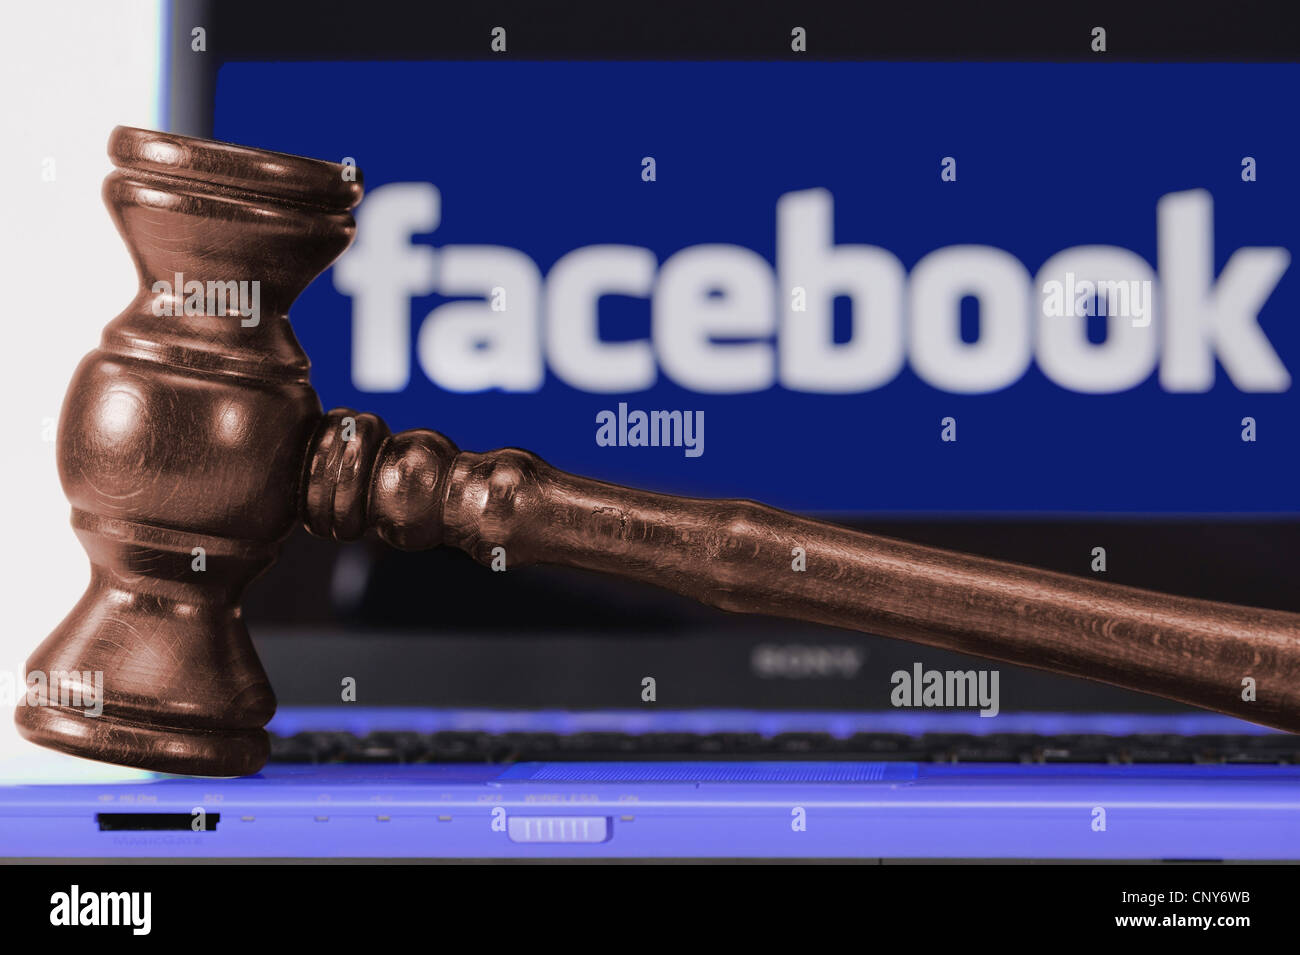 the Facebook logo under a magnifying glass symbolising the legally doubtful aspects of the platform - Stock Image